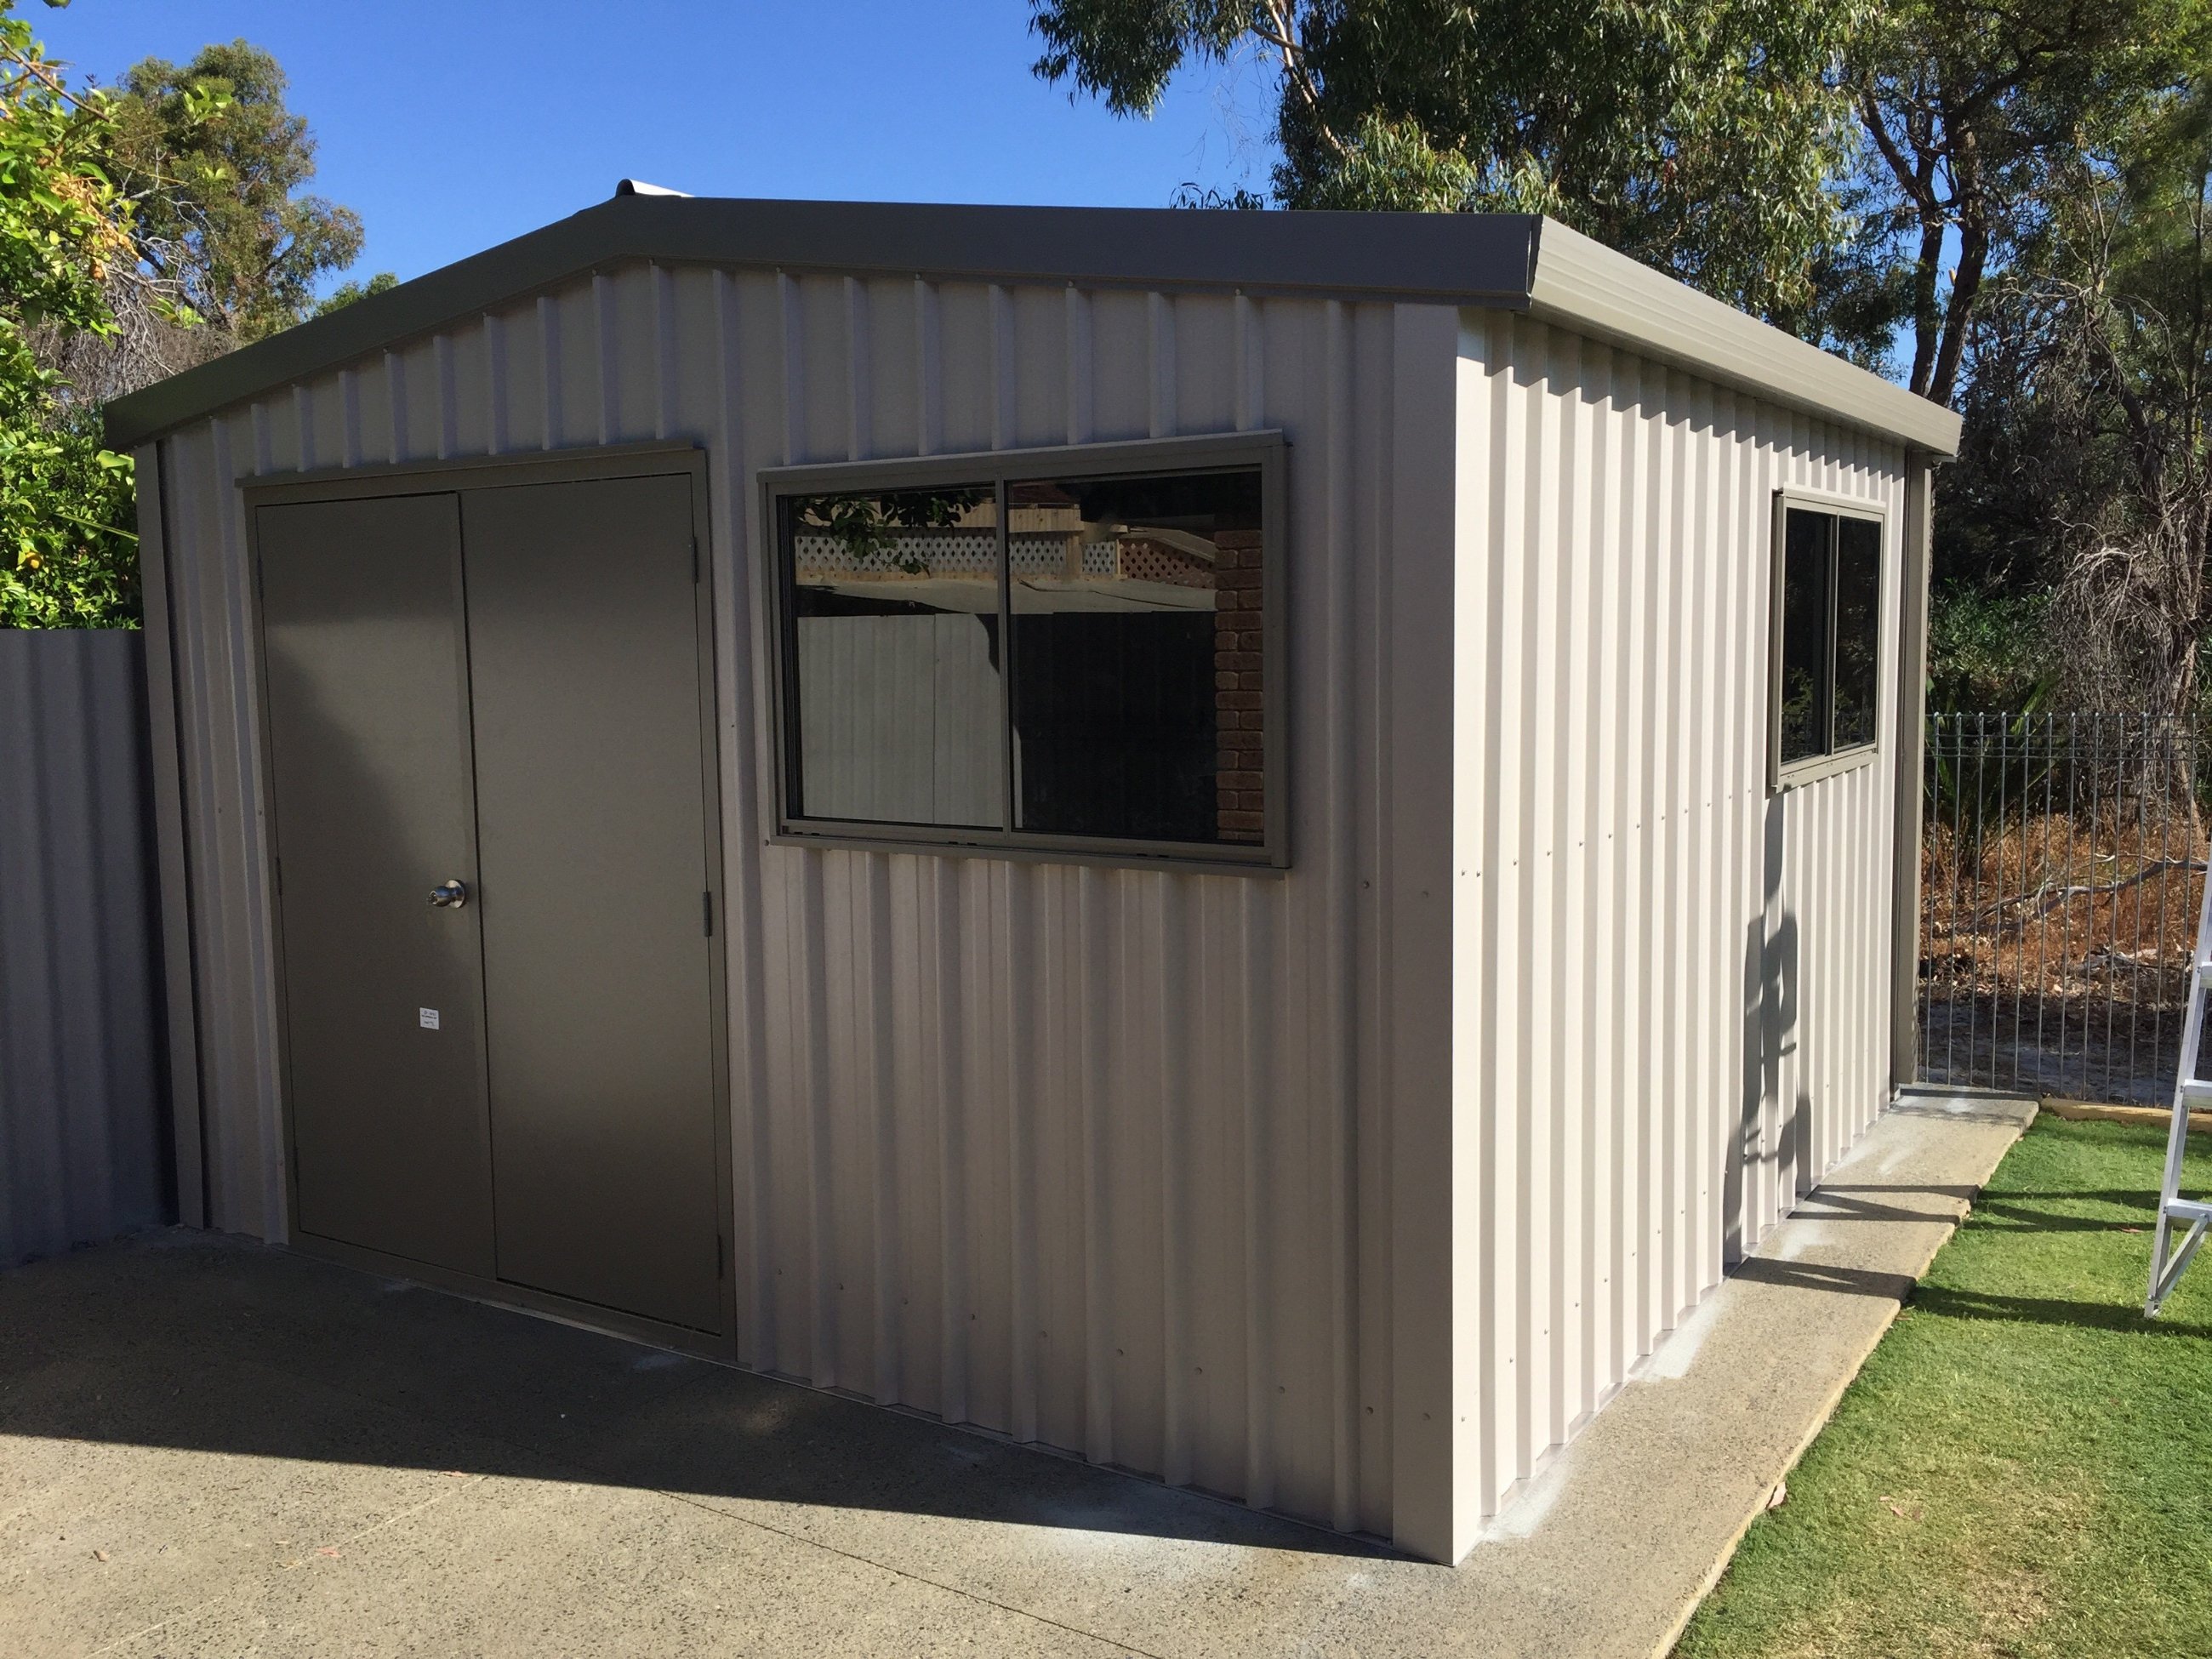 Read Article: Turning Your Shed Into An Office